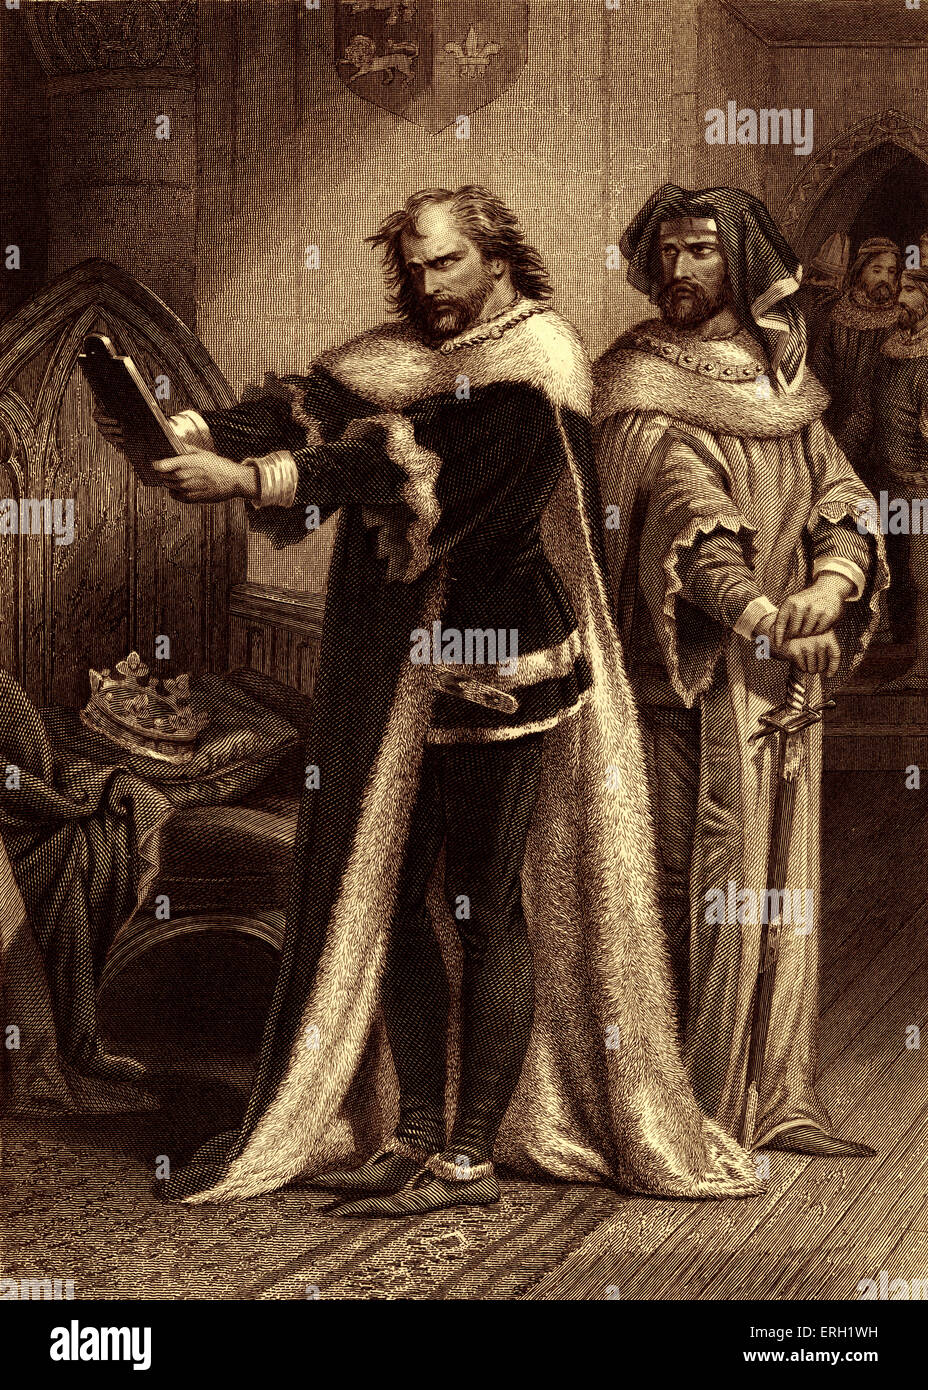 a literary analysis of the play richard by william shakespeare Richard iii summary william shakespeare  battle of bosworth field in the play's final act, richard iii is a dramatization of actual historical events that concluded in the year 1485, when the.